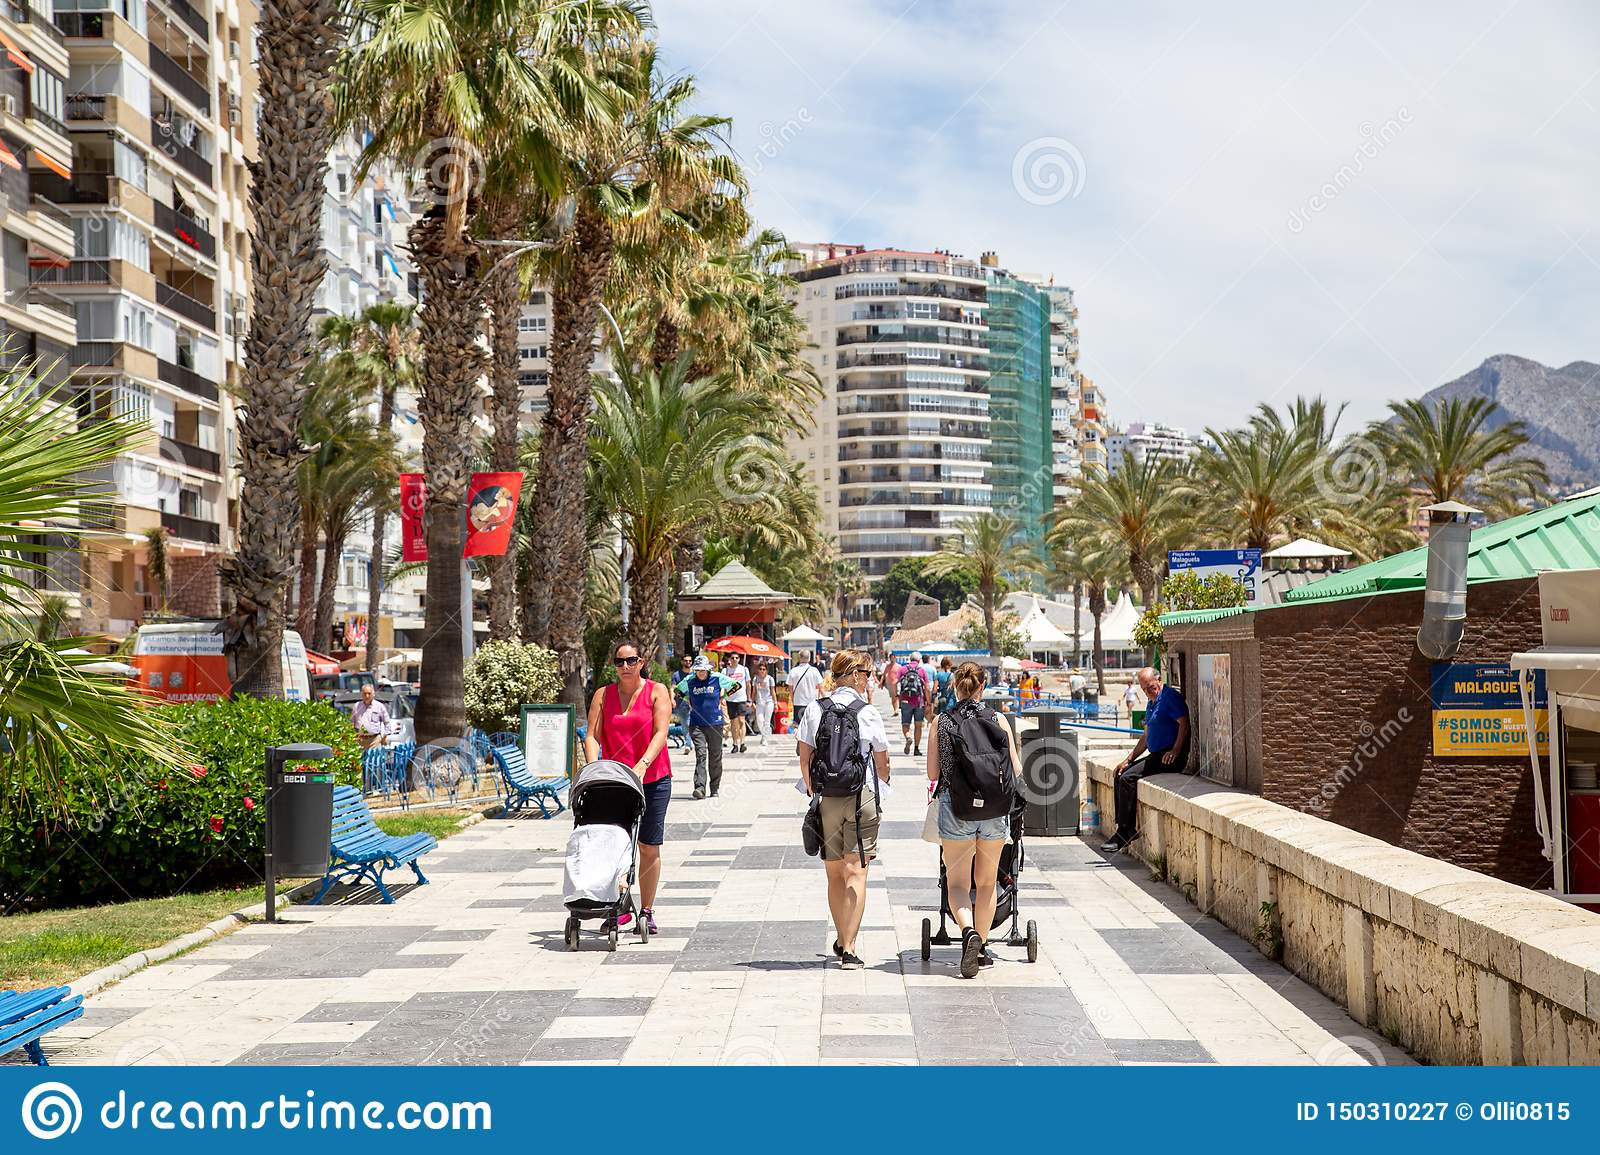 Malagueta Beach Promenade in Malaga, Spain